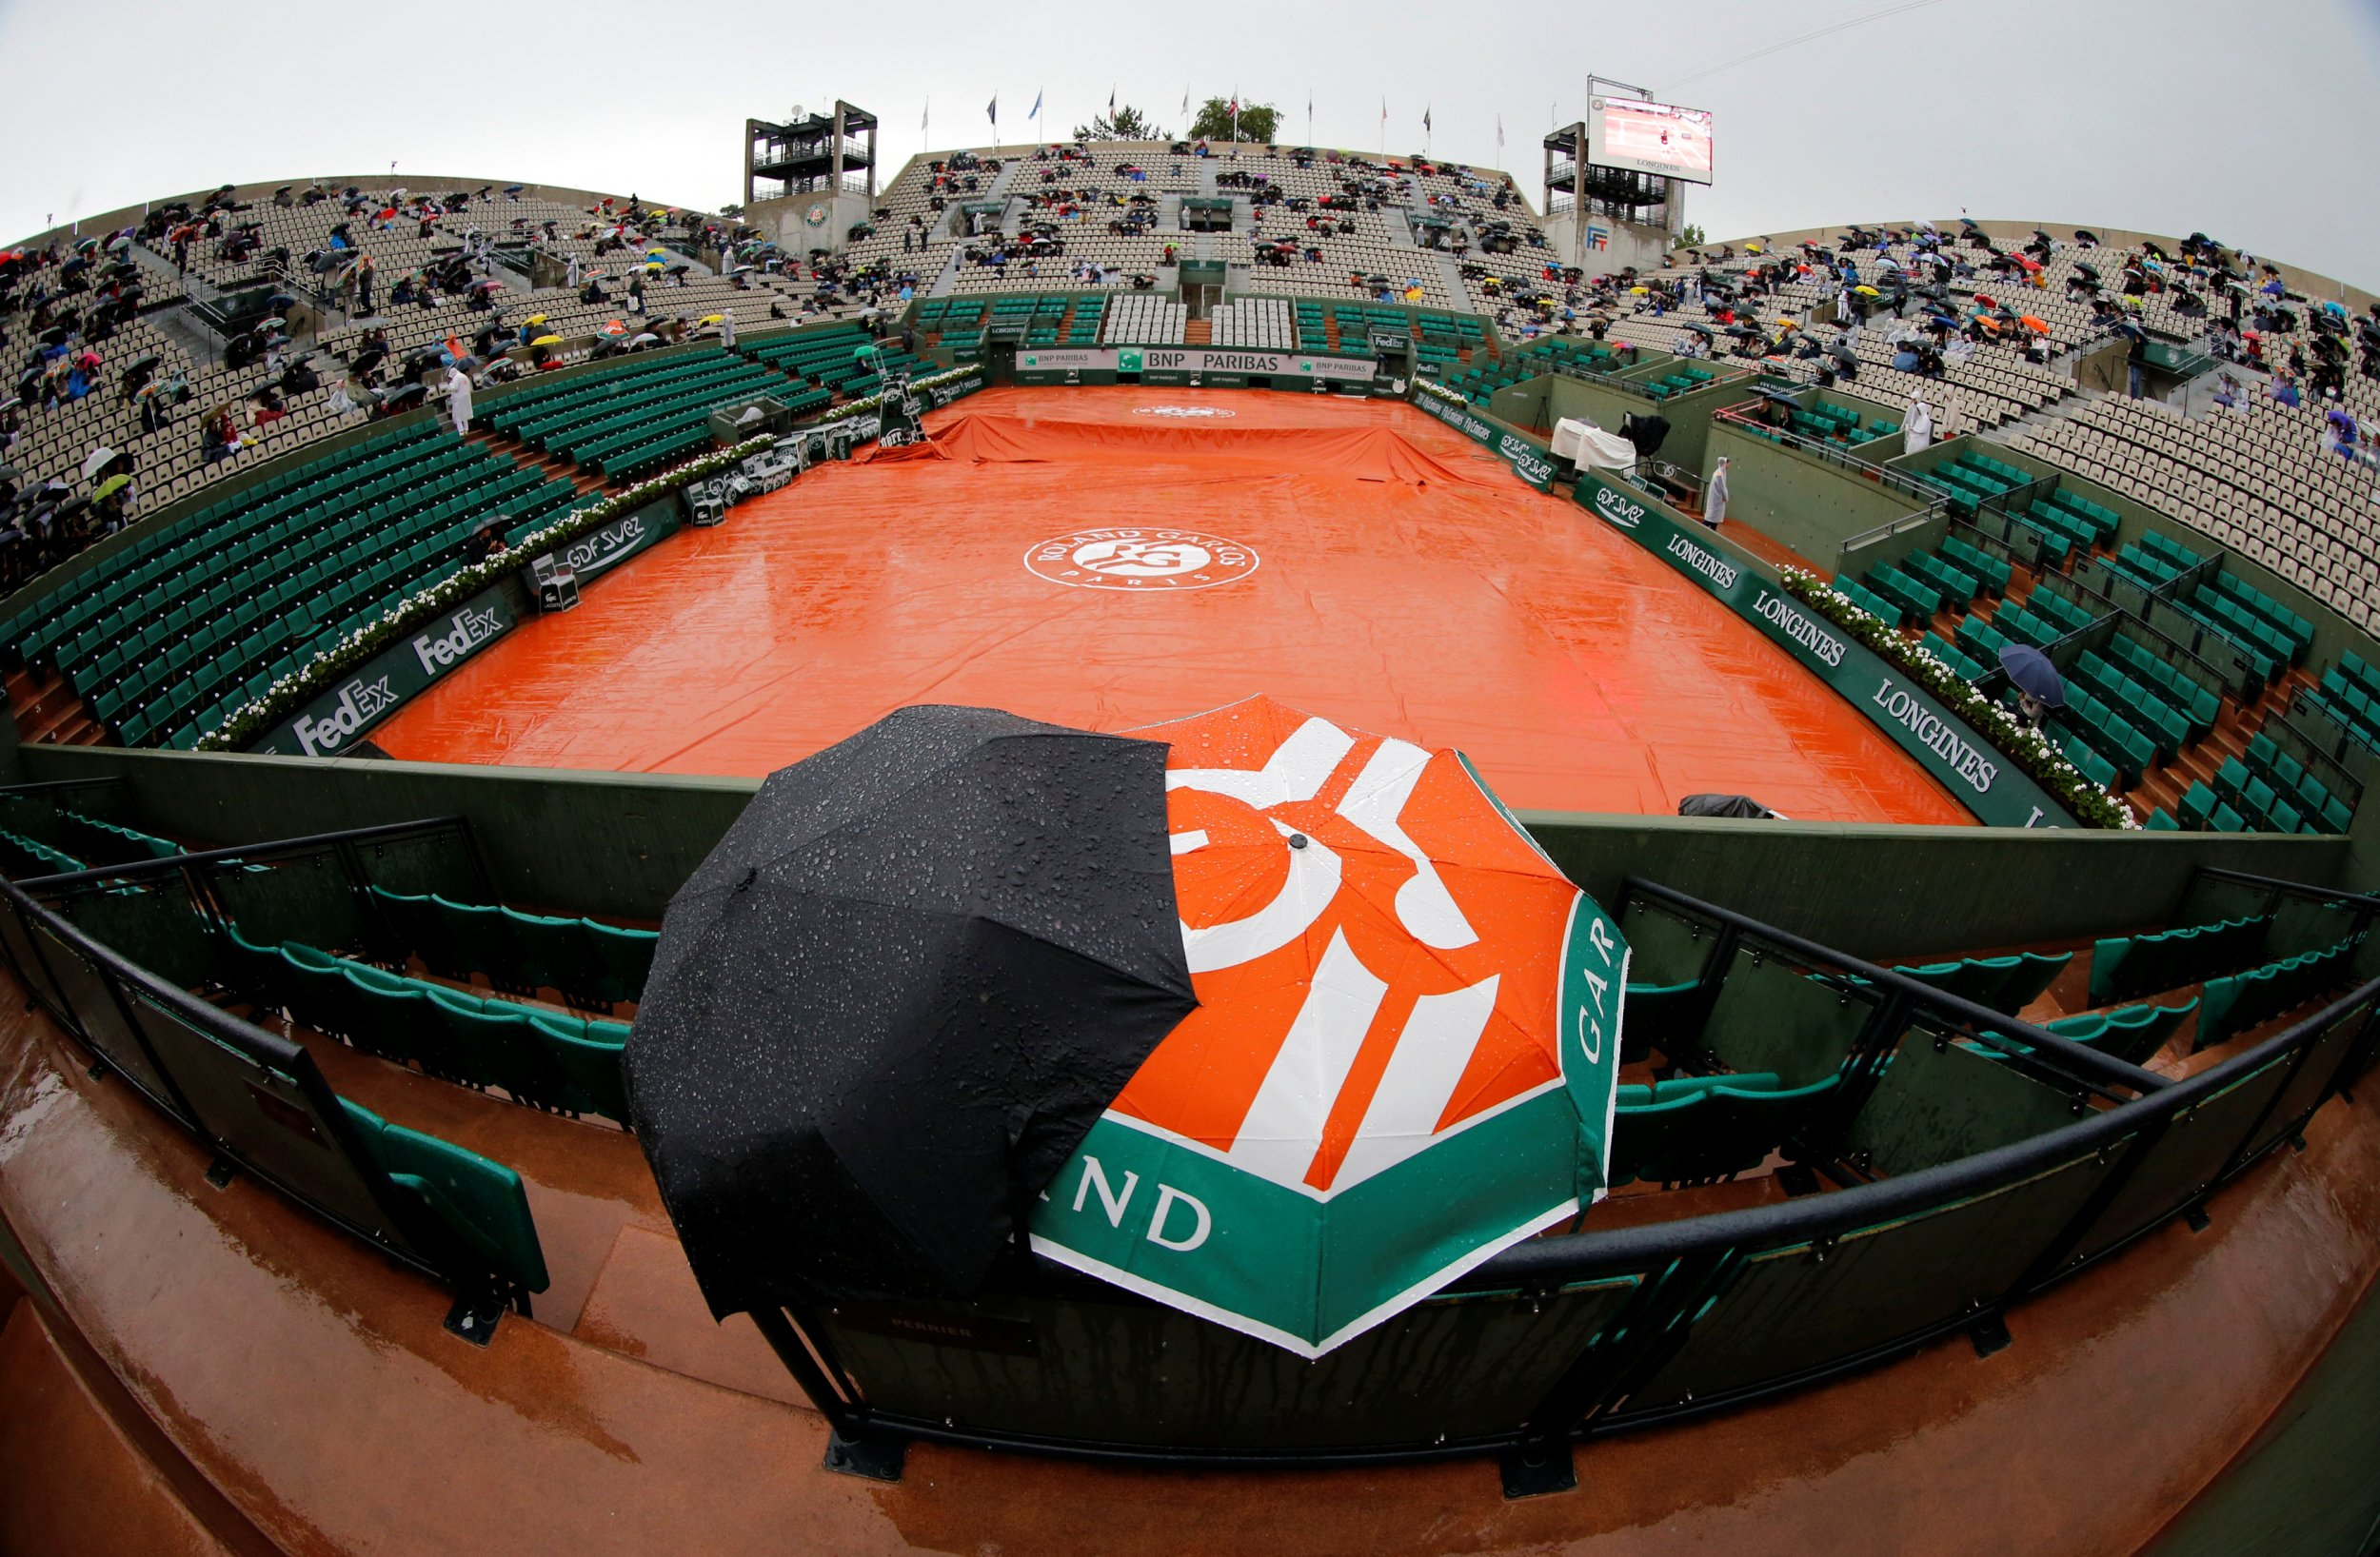 View of the Suzanne Lenglen court at the Roland Garros stadium in Paris, France, June 4 2014.